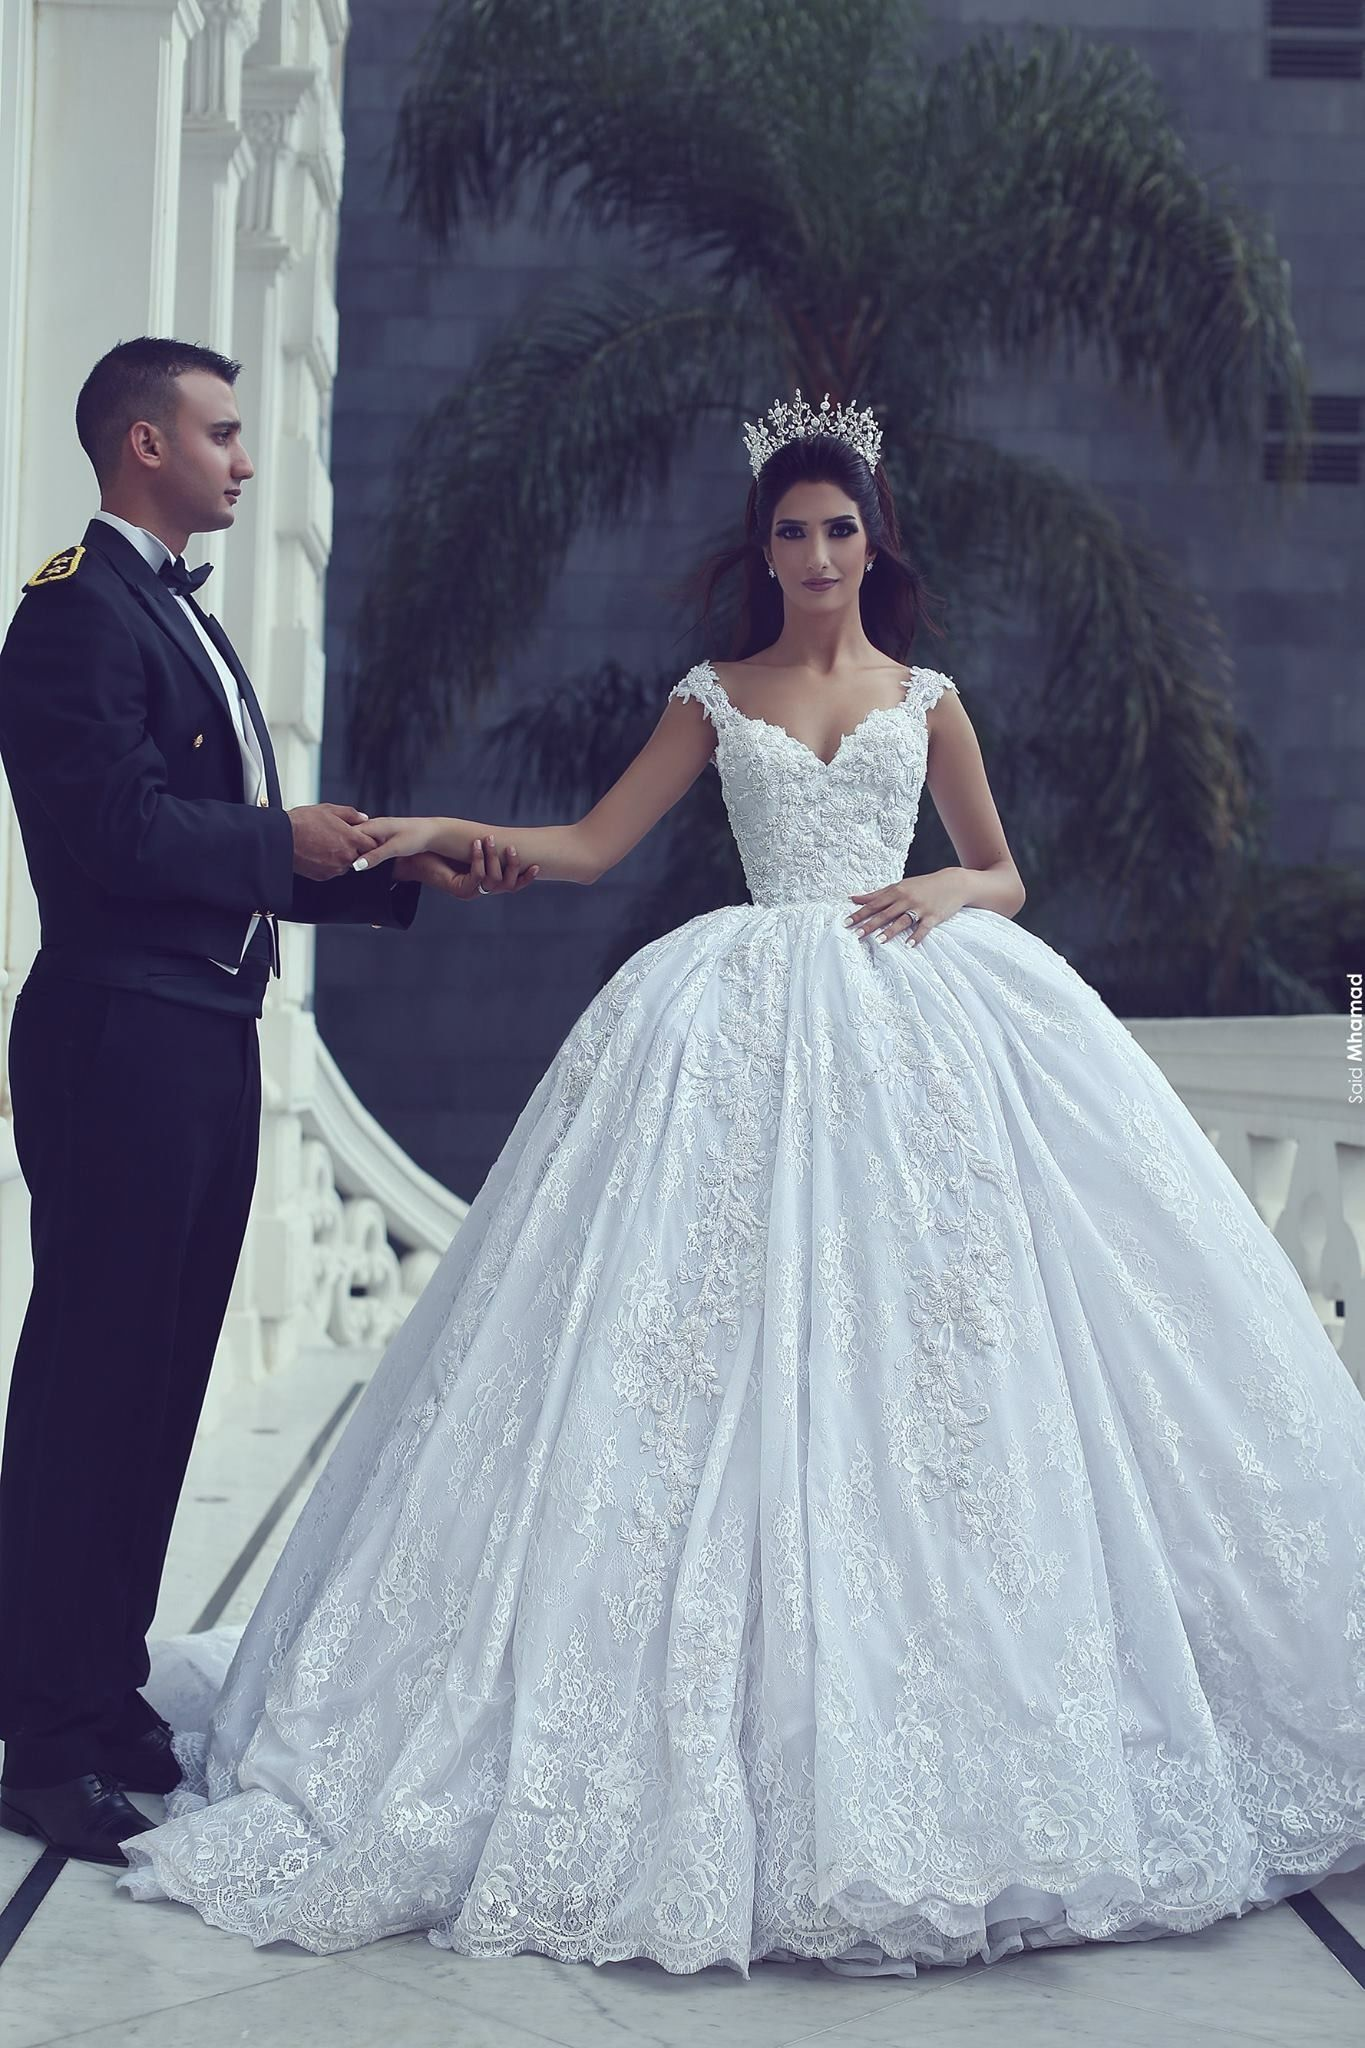 7a5baa79119e8 To look like a queen on my wedding day is my dream | Tieing The Knot ...